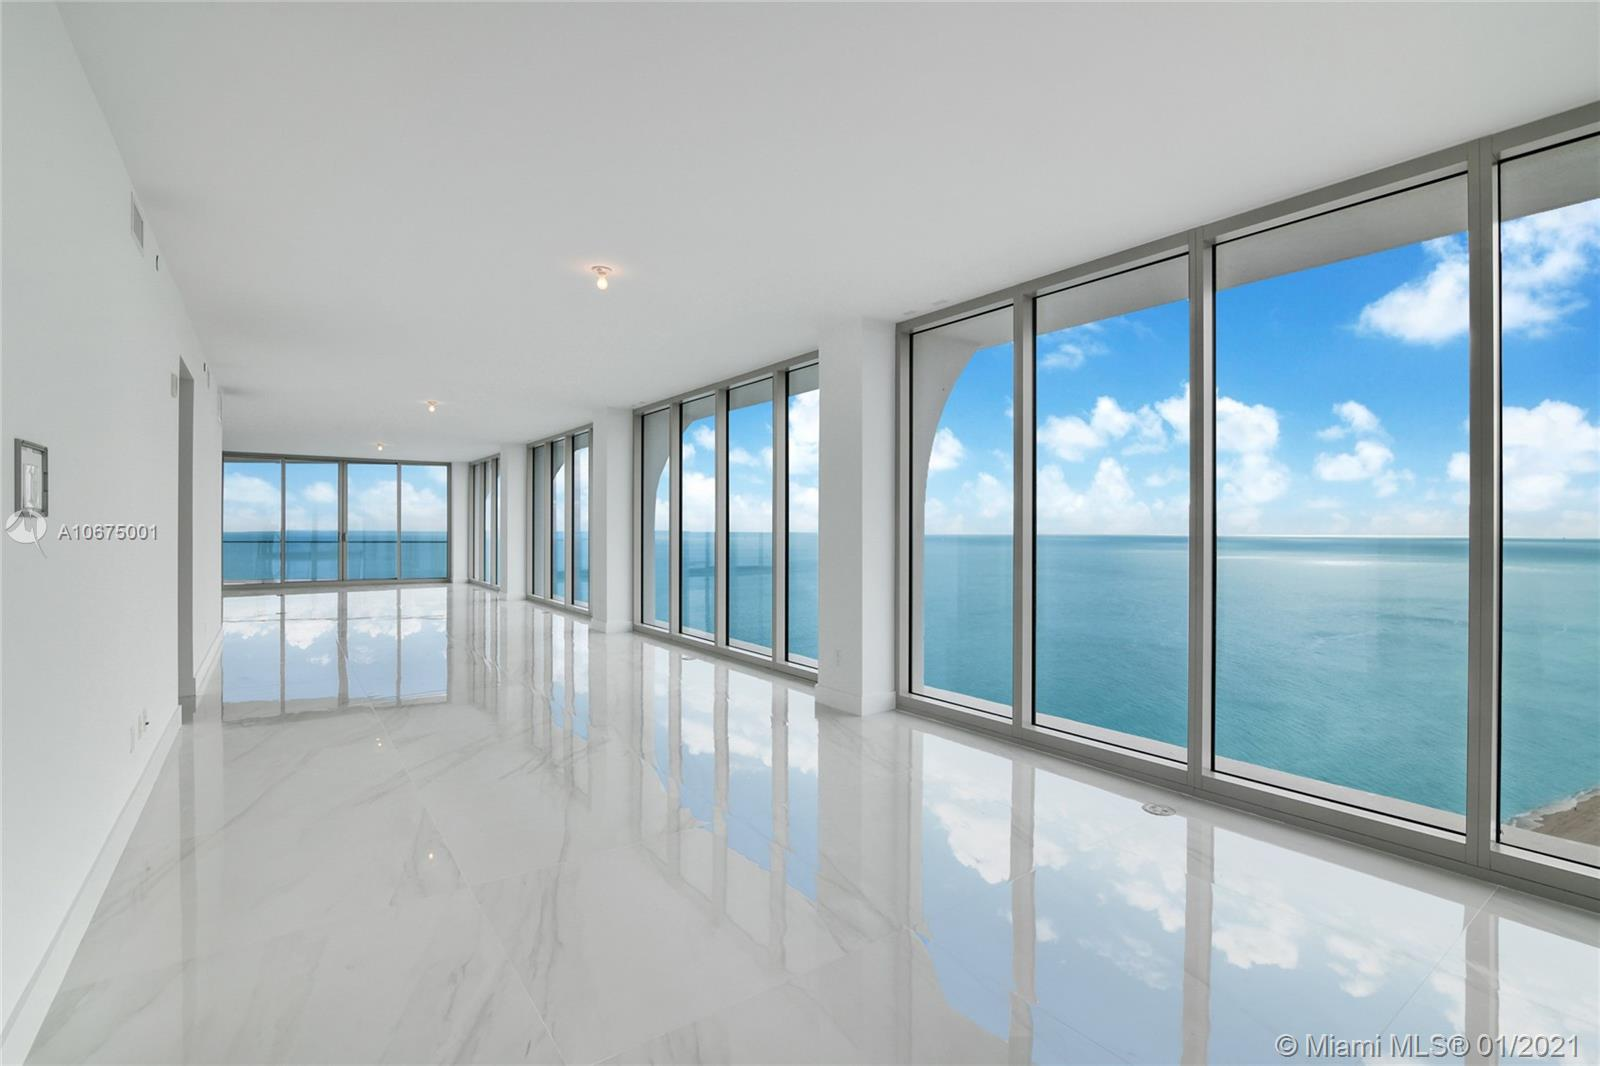 16901 Collins Ave Miami, FL 33160